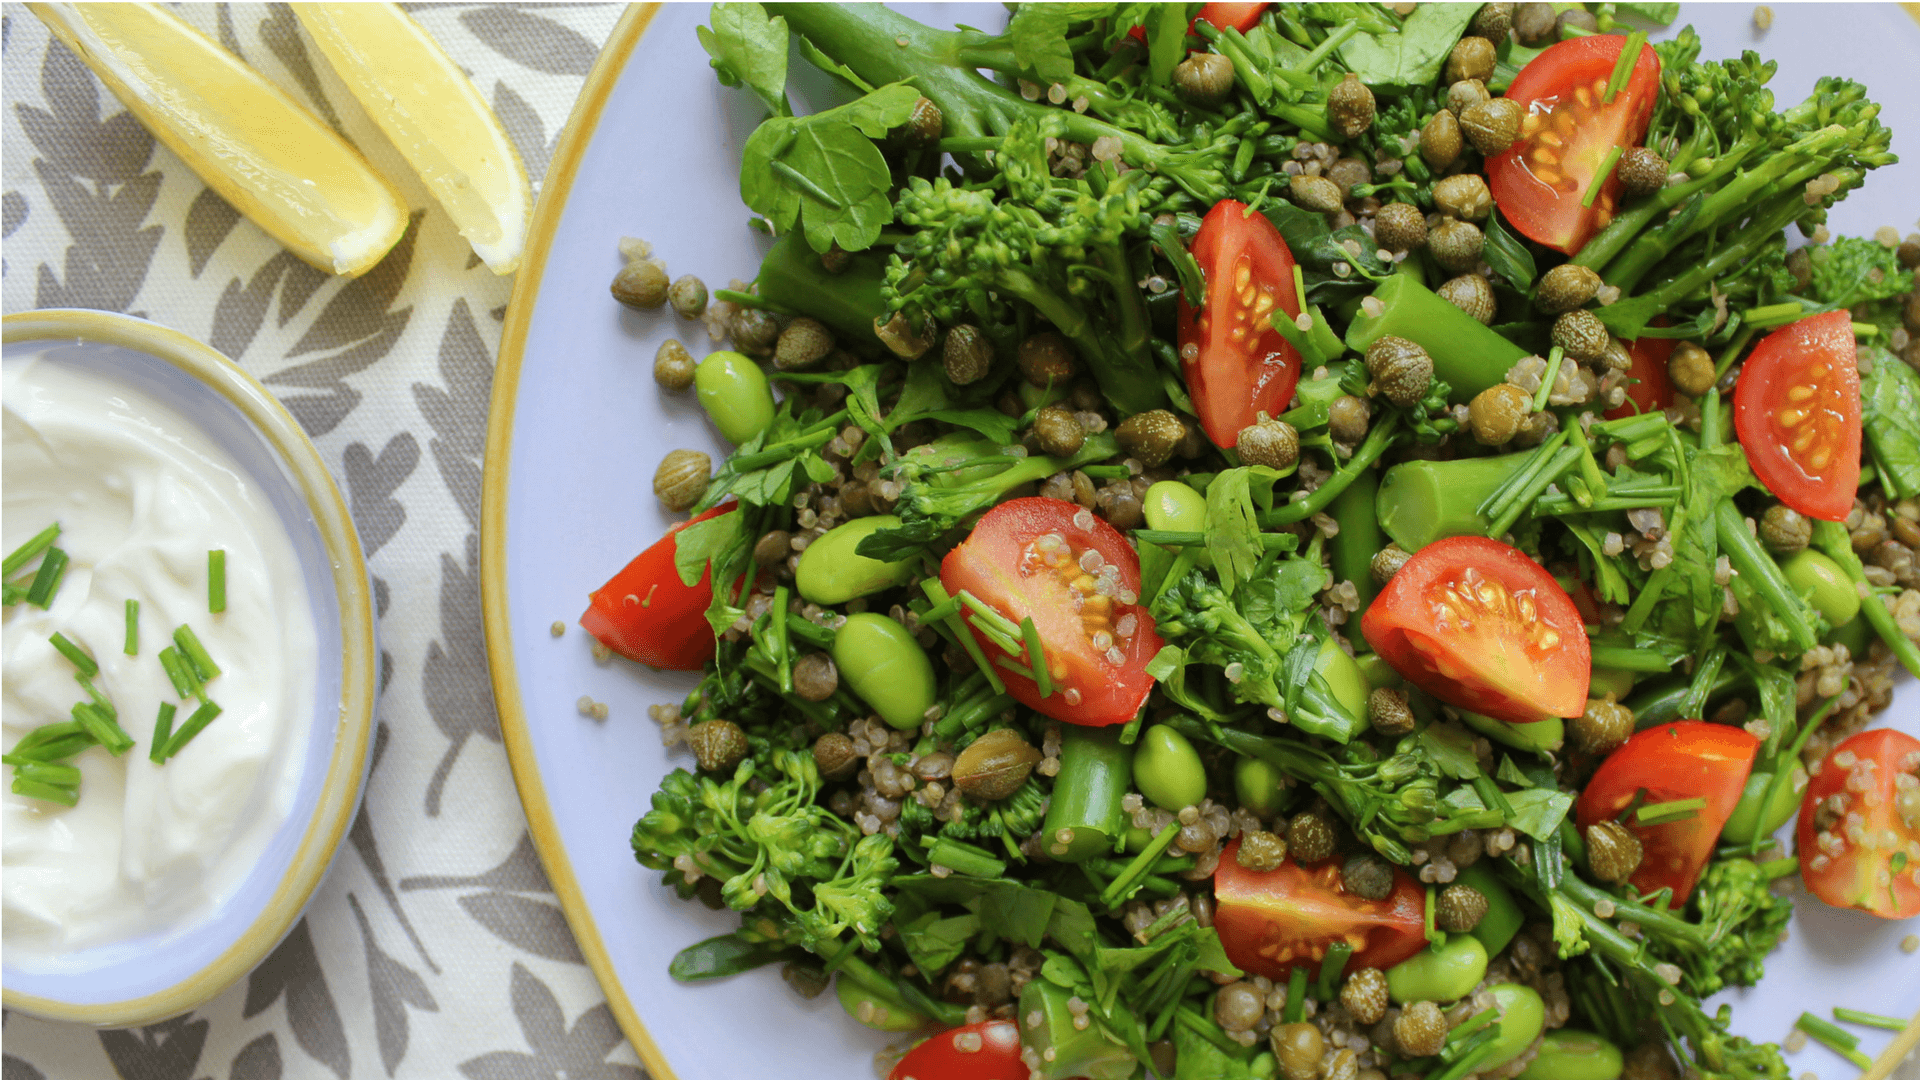 Lentil, Quinoa, and Herb Garden Salad